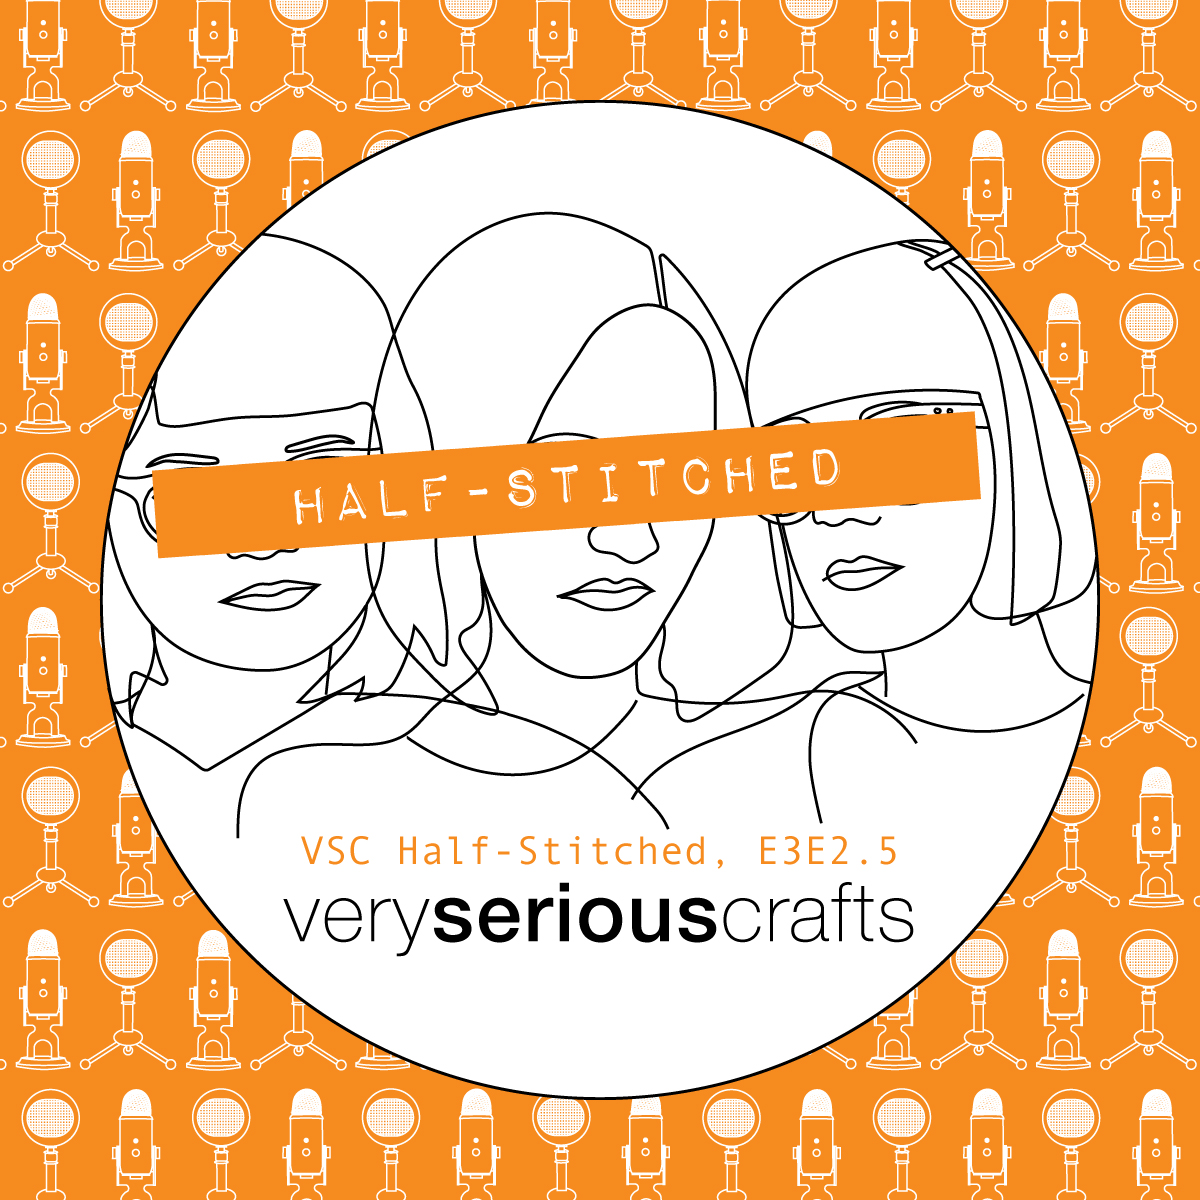 The Very Serious Crafts Podcast, Patreon Half-Stitched Episode S3E02.5